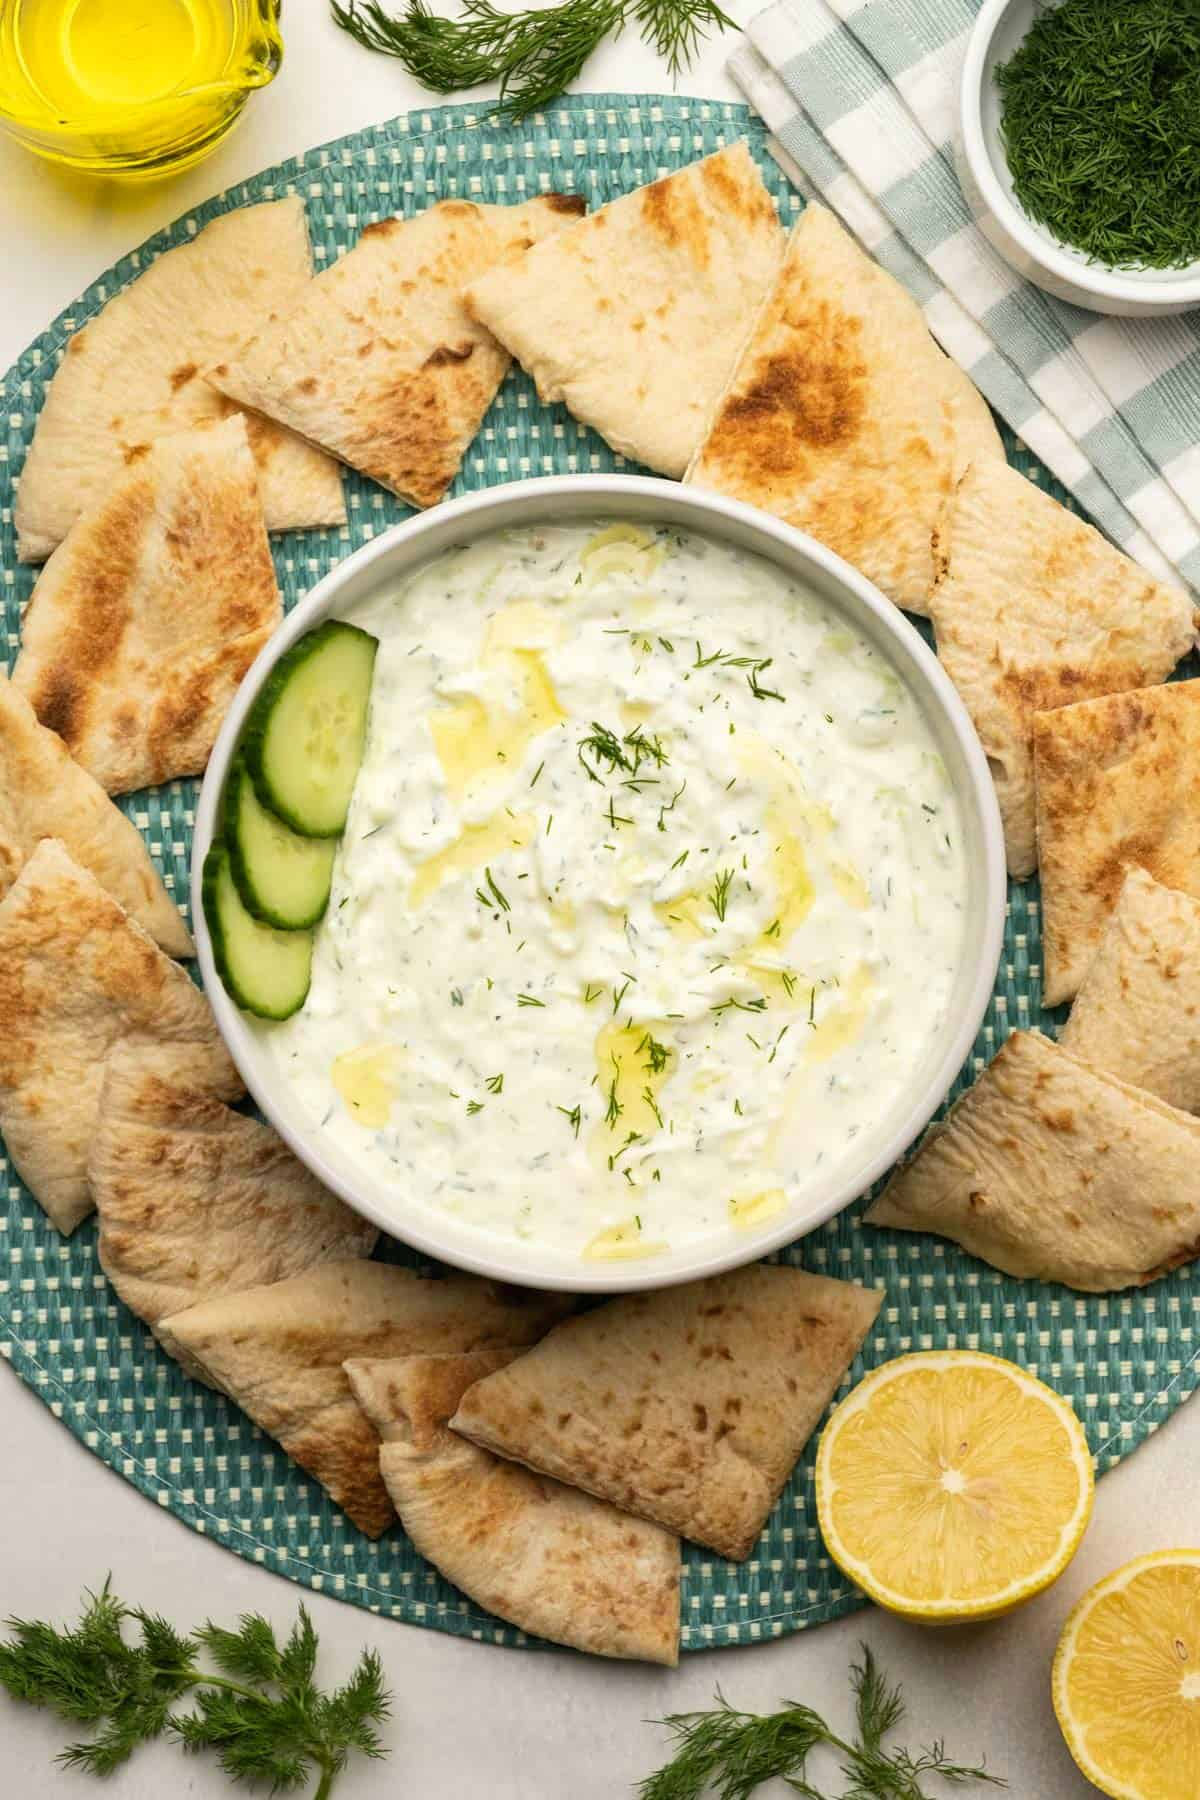 Tzatziki topped with olive oil and fresh dill in a white bowl.